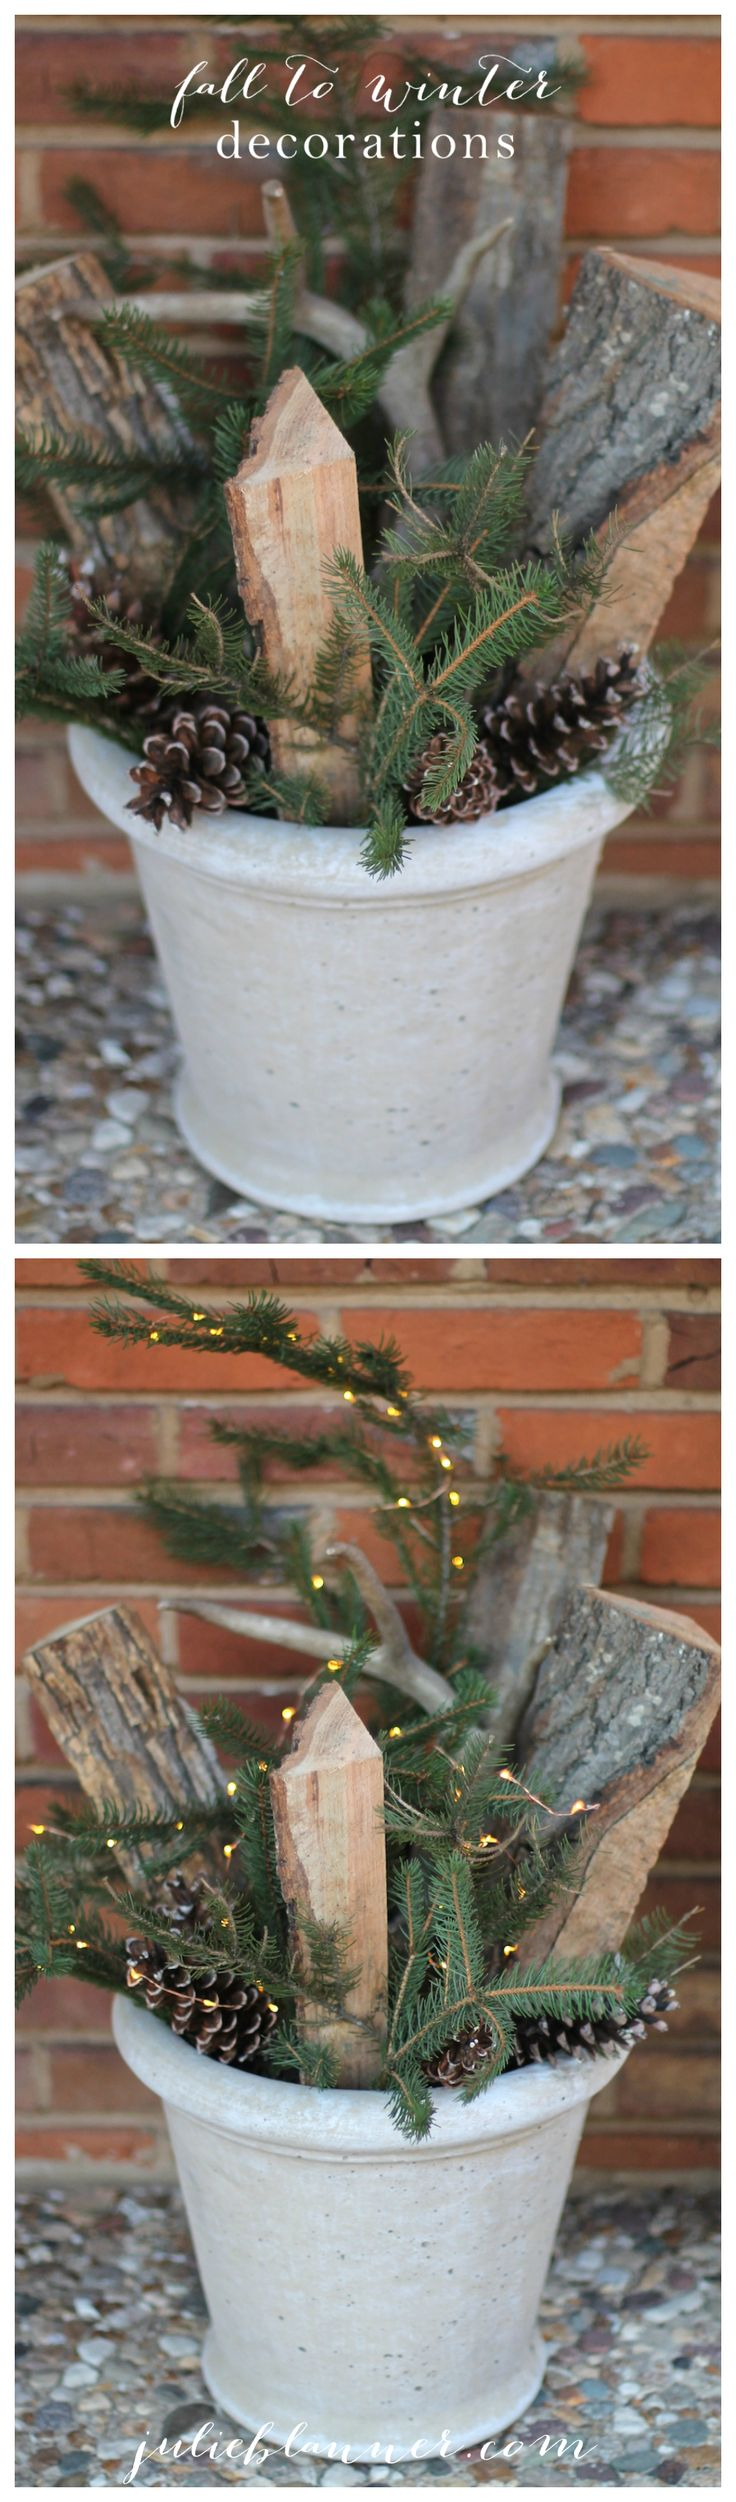 "Easy fall to winter decorations | a 5 minute front porch ""topiary"" arrangement"